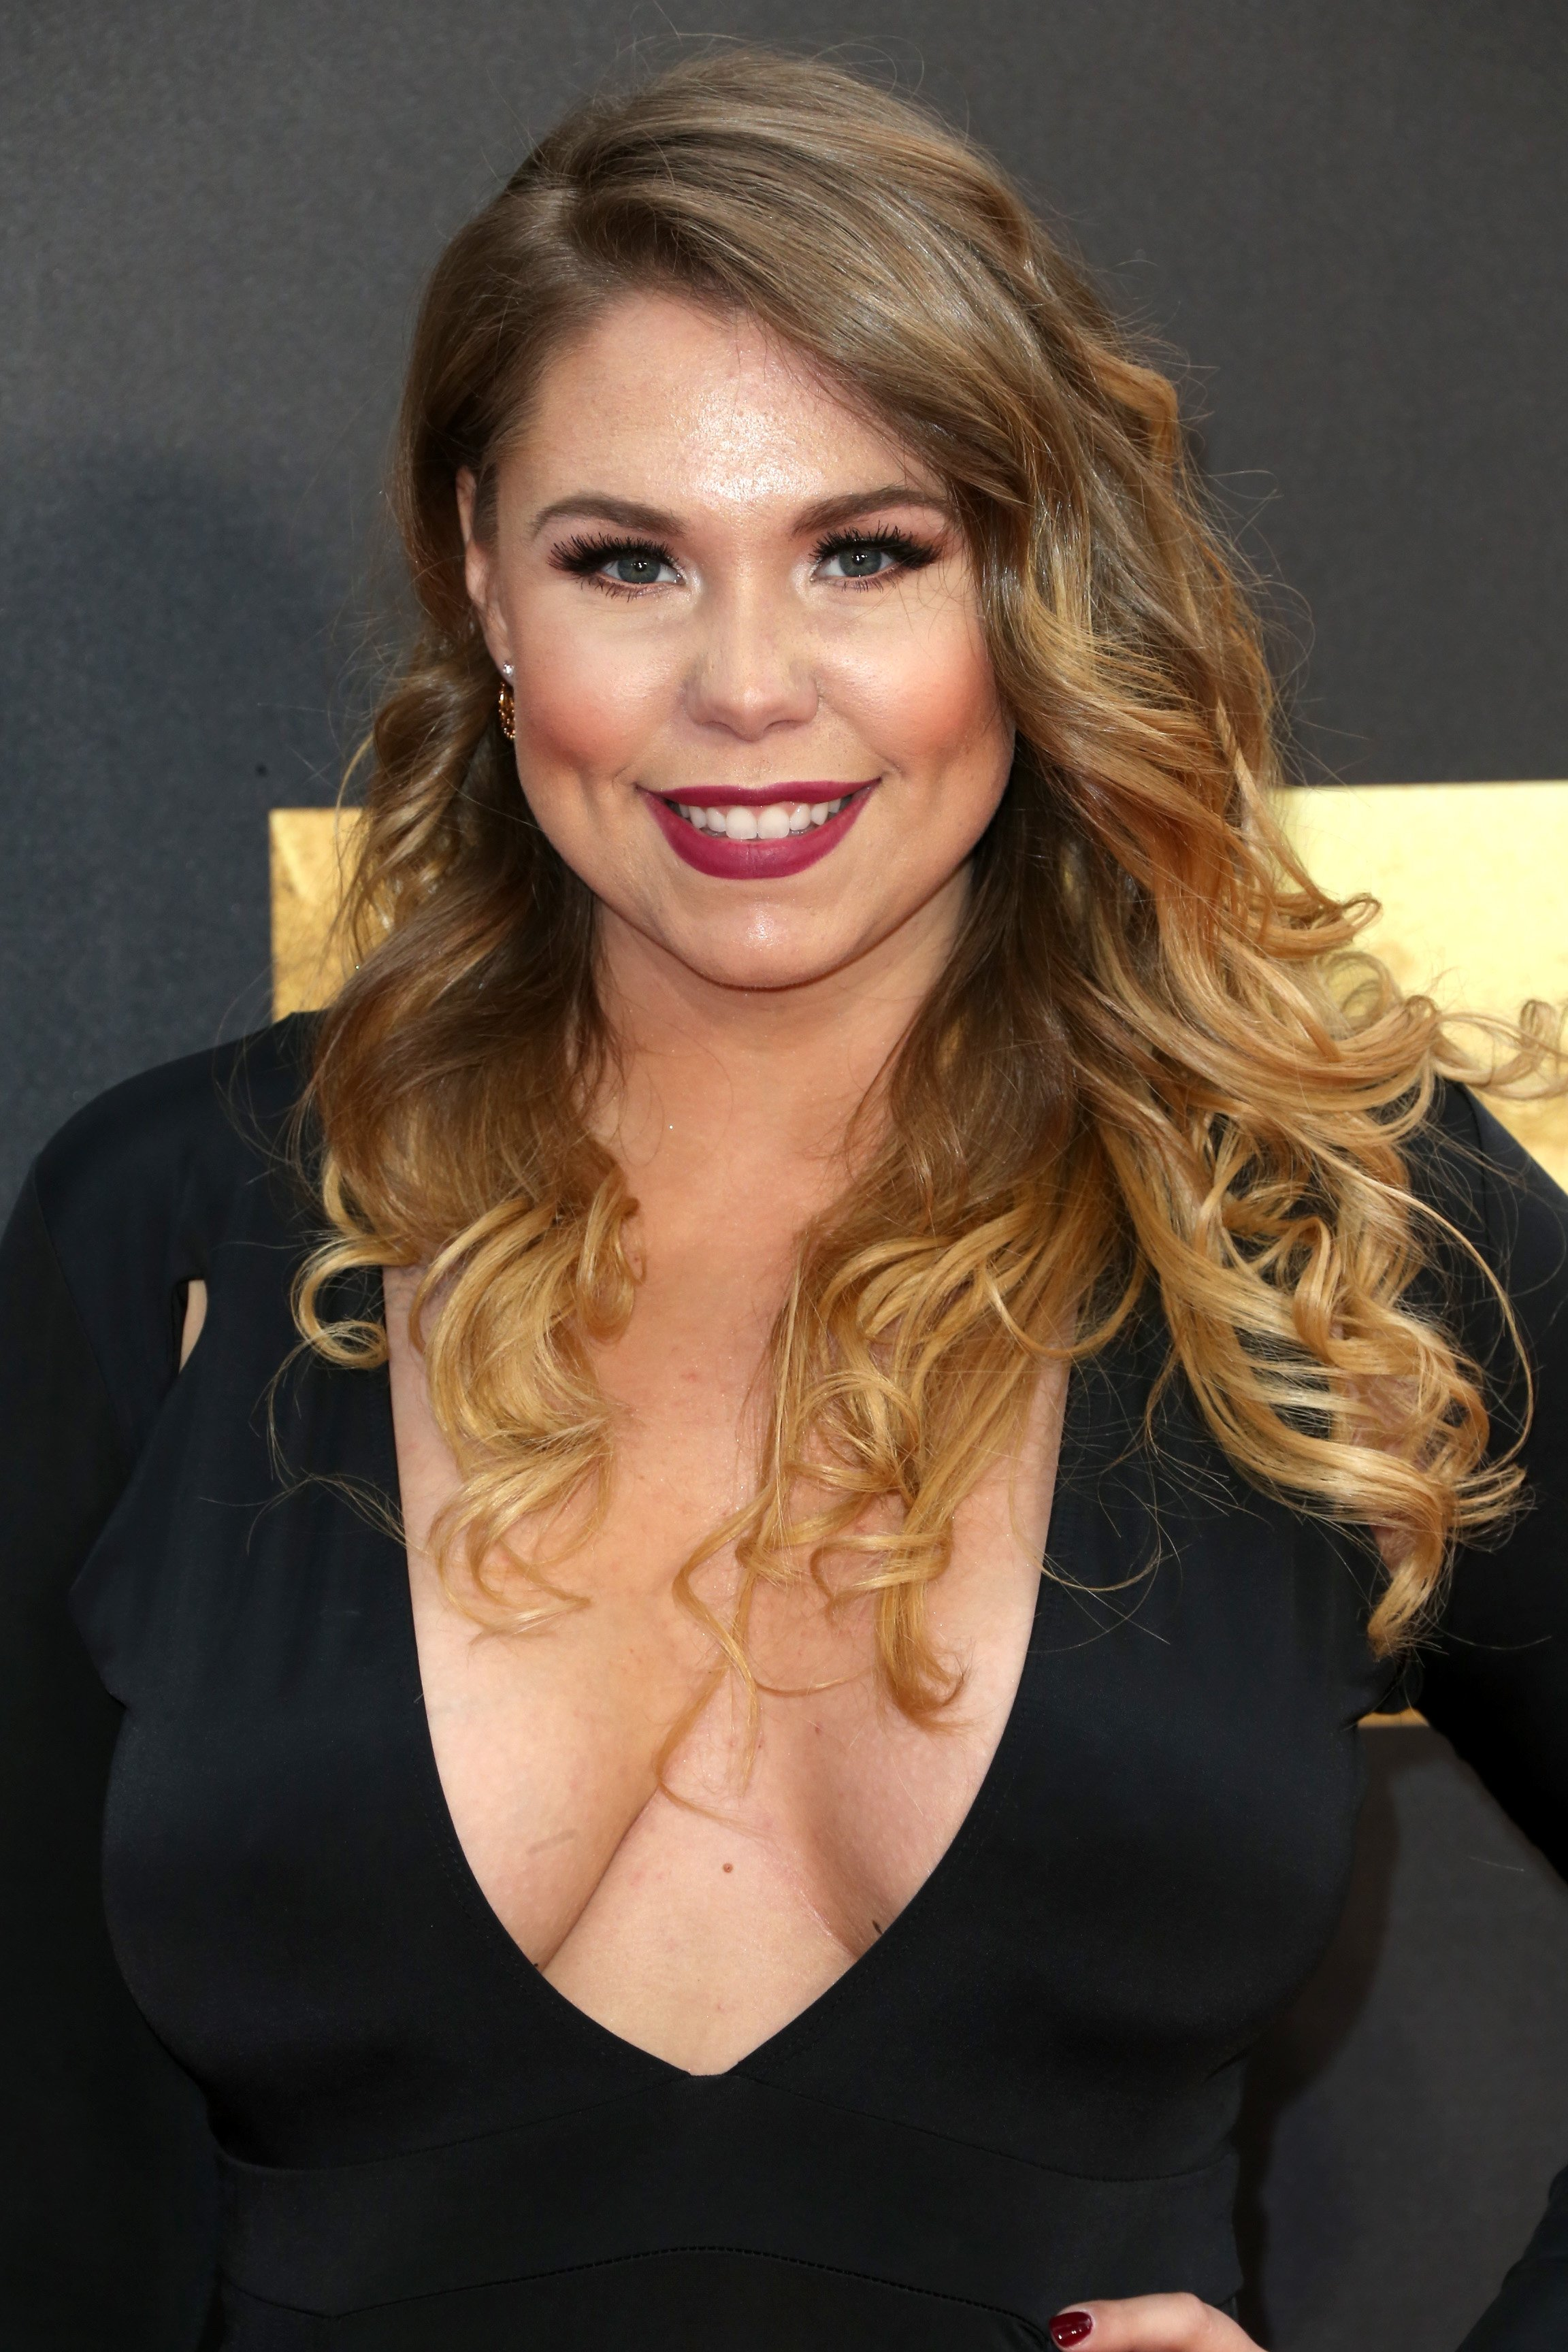 Kailyn Lowry at the 2016 MTV Movie Awards in Hollywood | Source: Getty Images